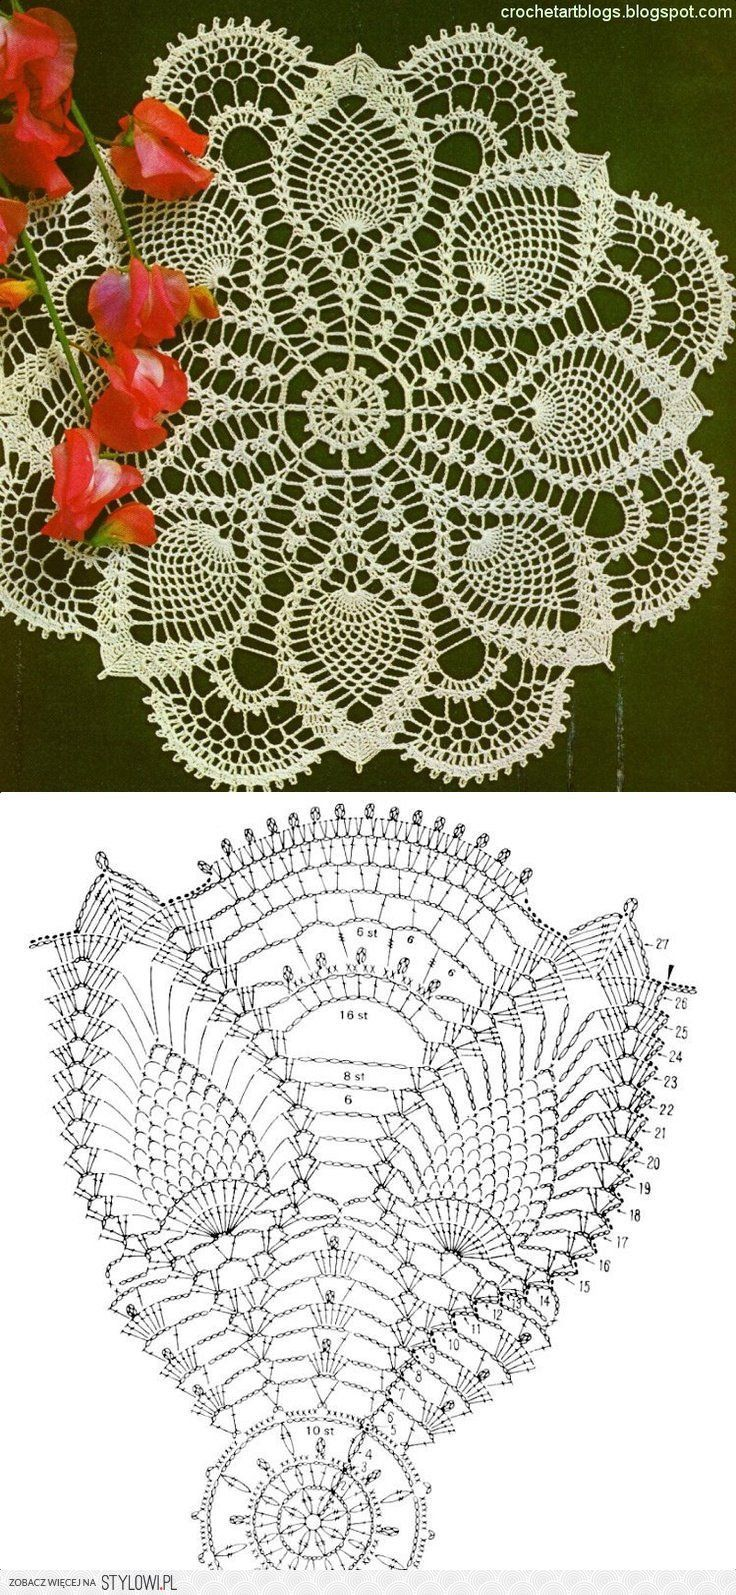 Crochet Lace Pineapple Doily and Chart | Pretty | Pinterest ...